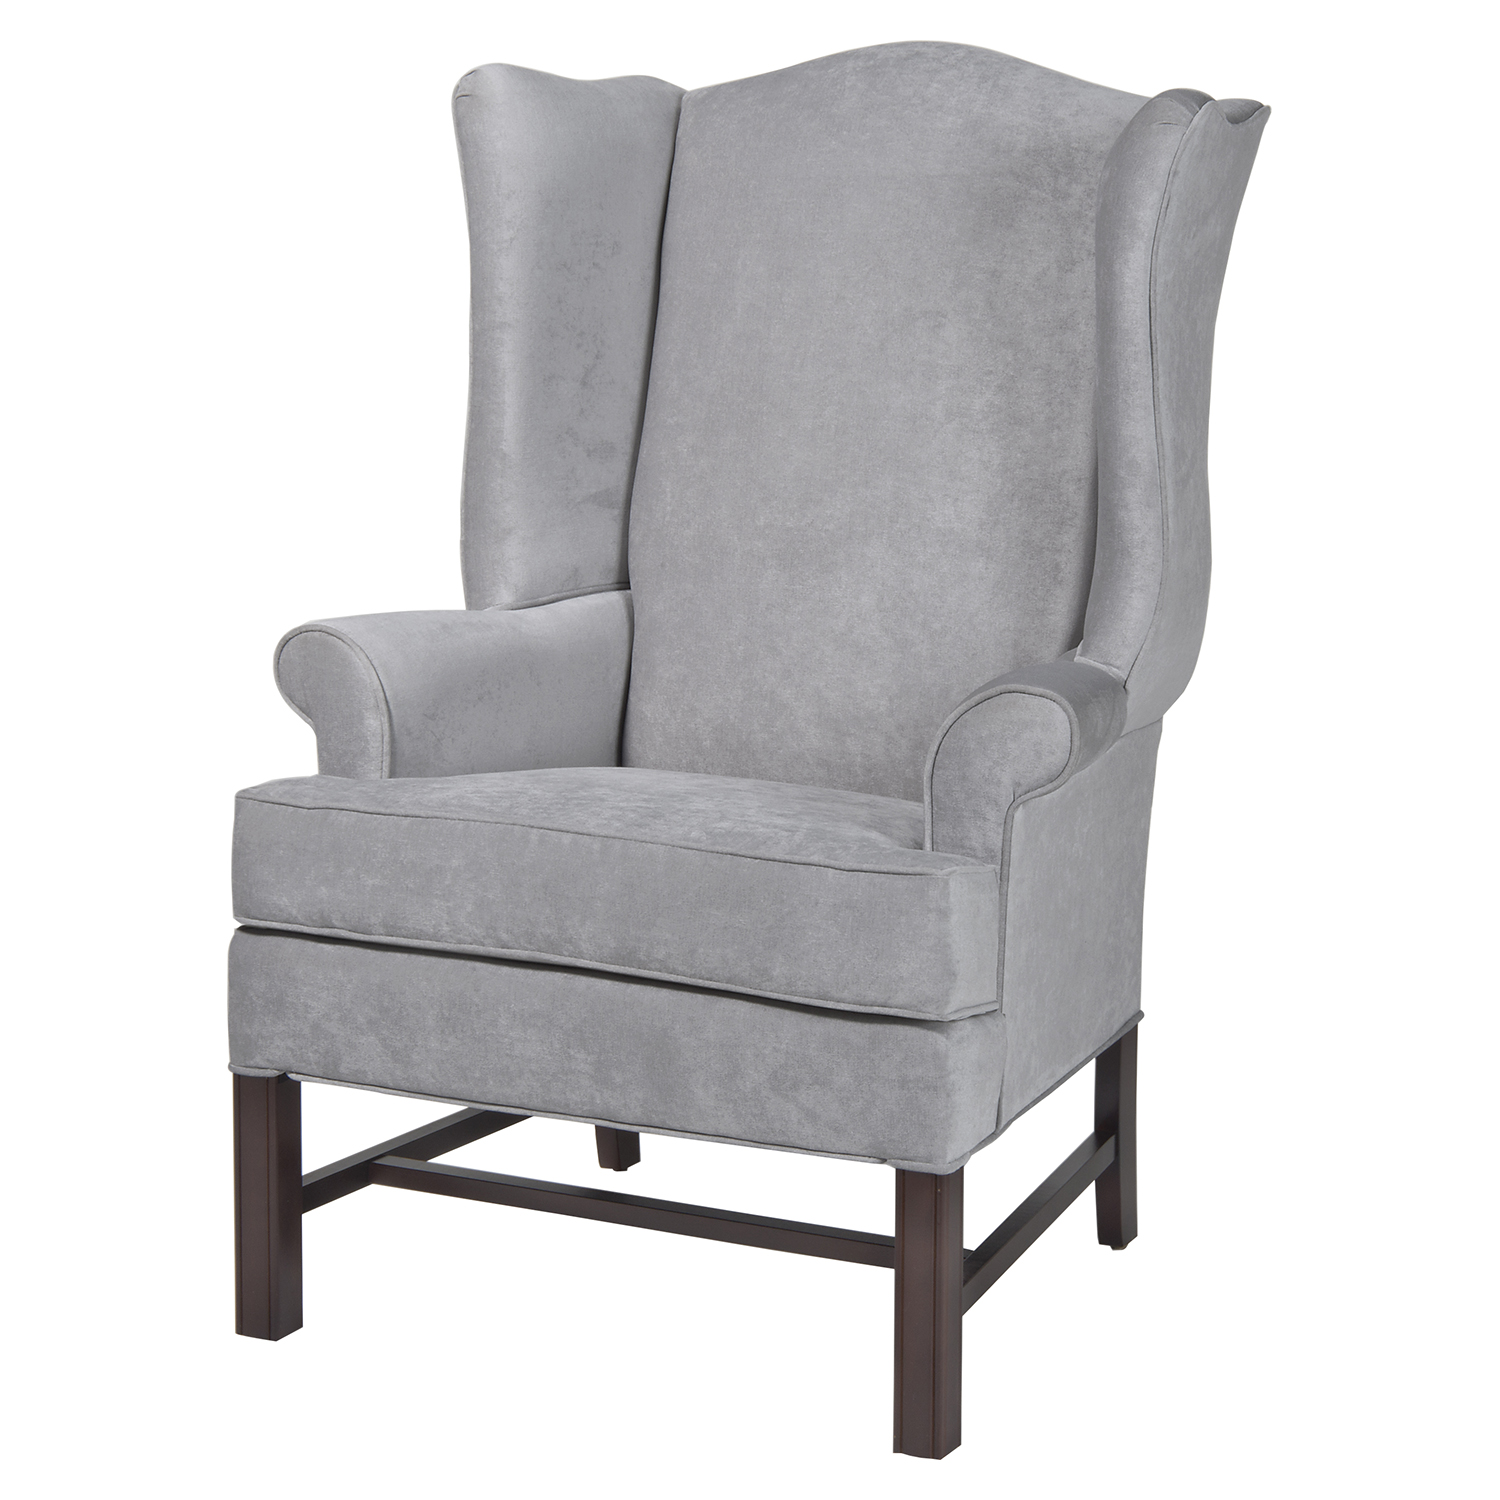 Chippendale Wing Chair - Silver